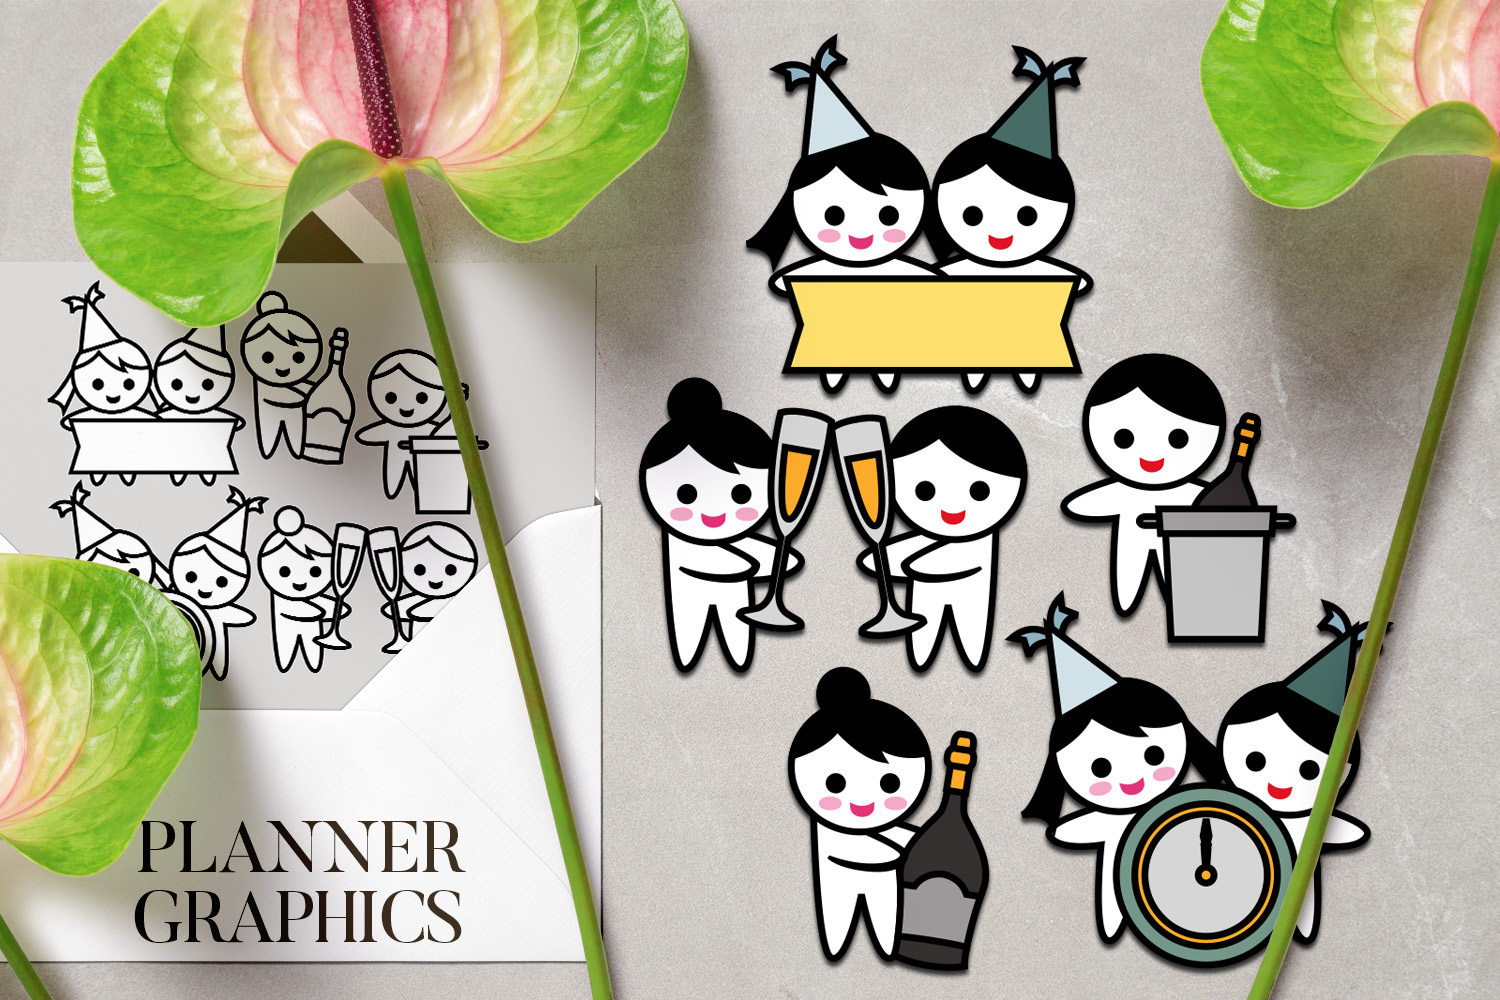 Holidays Bundle - Planner Graphic Illustrations example image 4